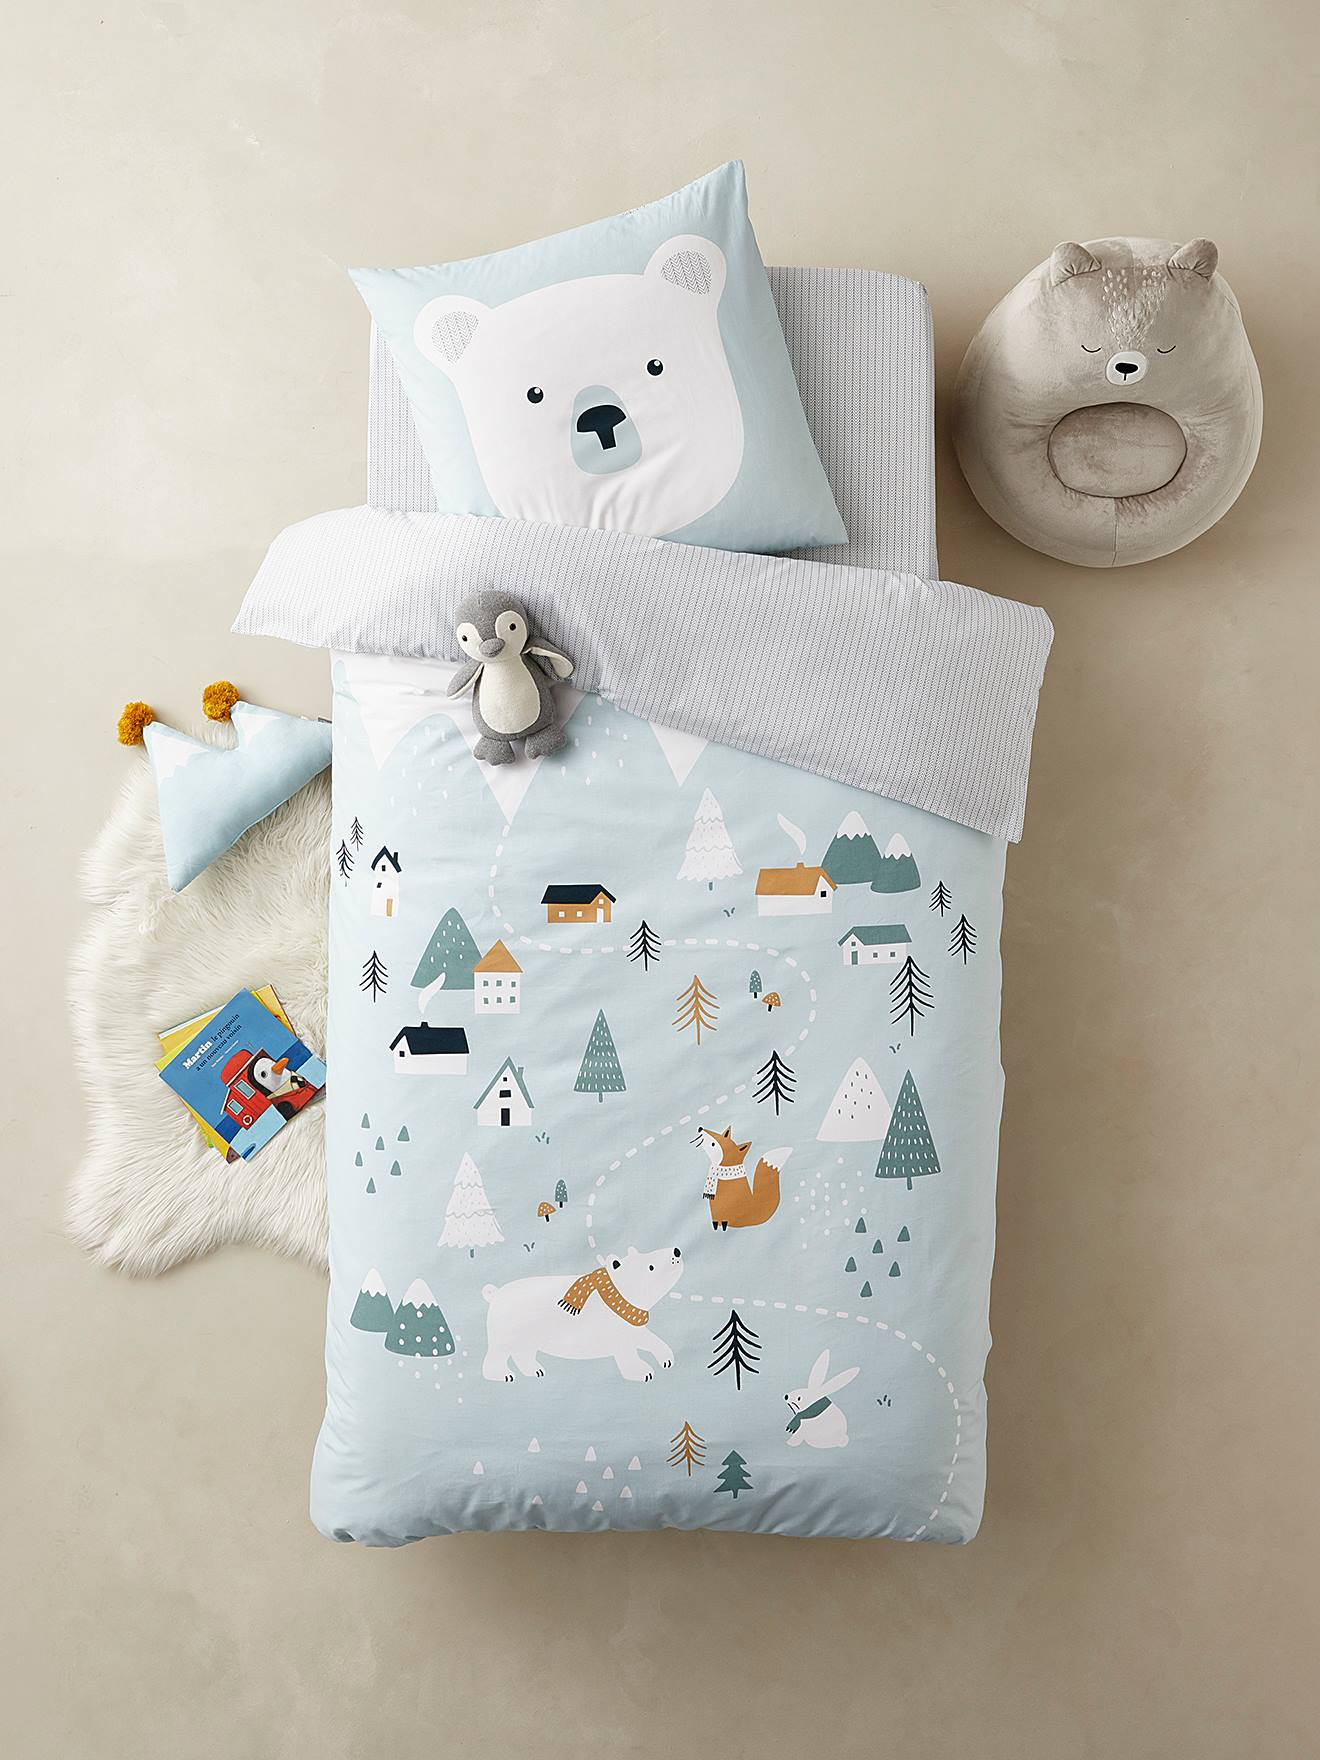 New Design Owls Duvet Cover Reversible Bedding Set With Pillow Cases